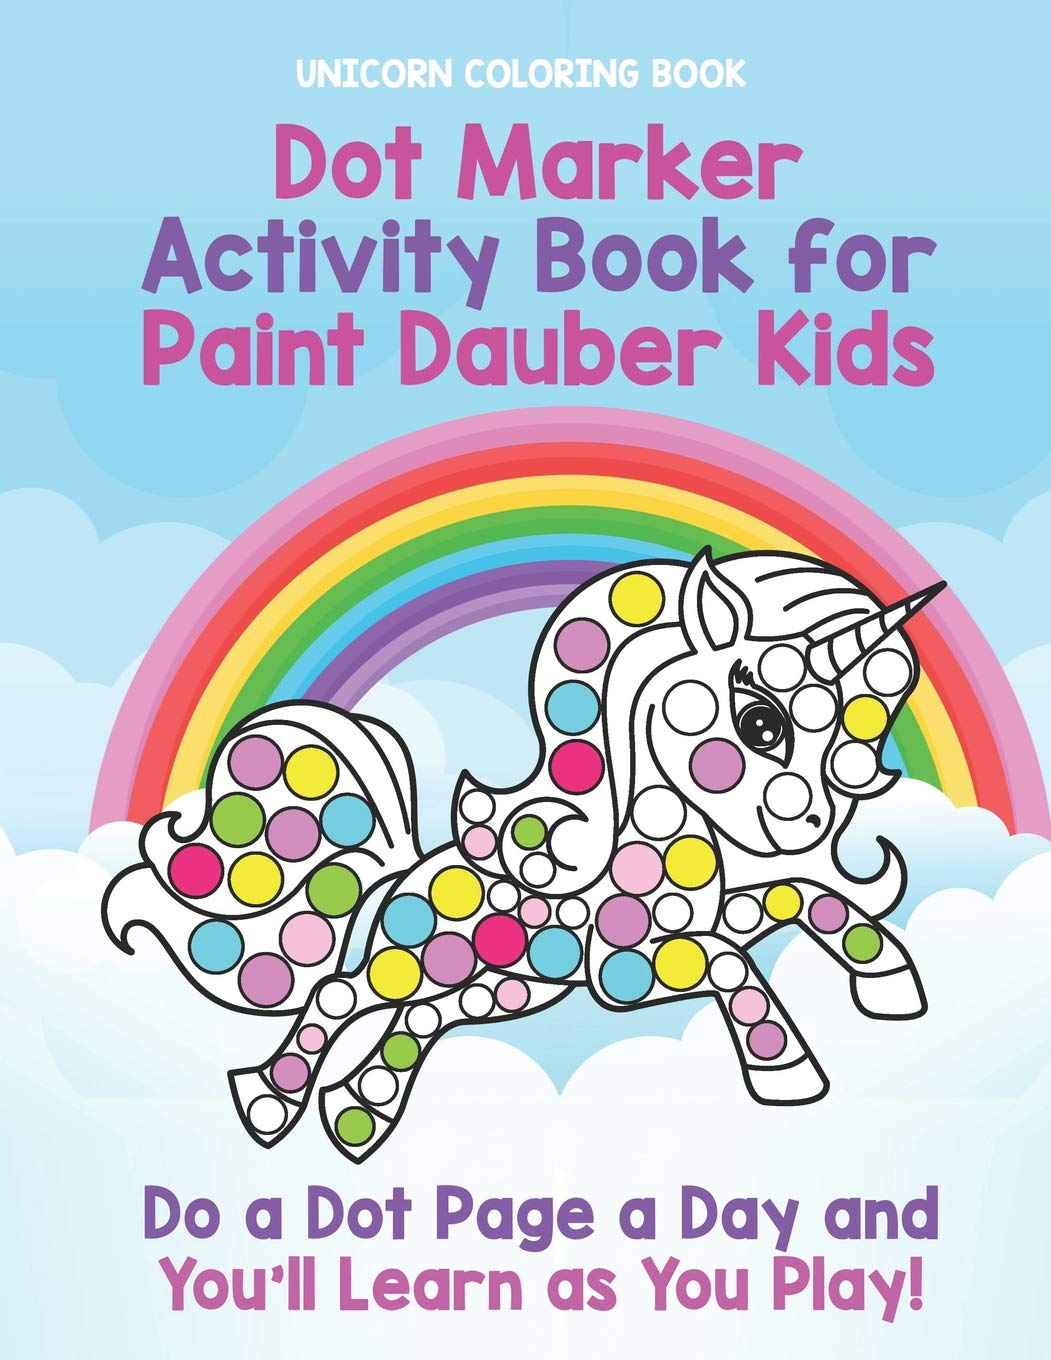 Unicorn Coloring Book  Dot Marker Activity Book For Paint Dauber